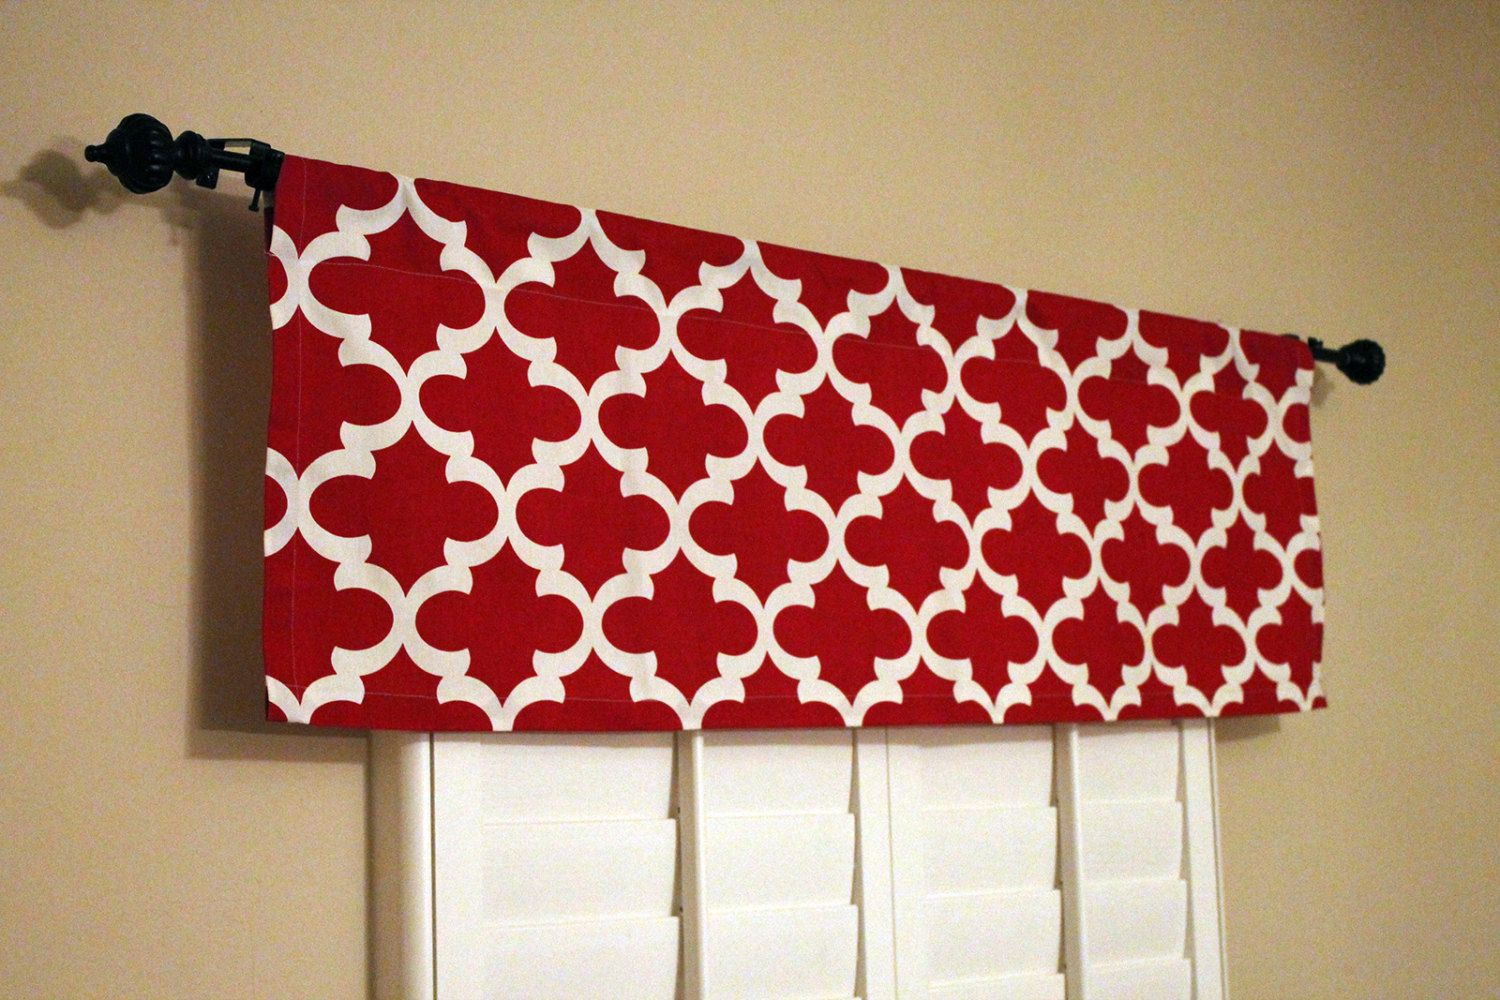 Red Kitchen Valance Counter Stool Curtains Window By Homemakeover 27 45